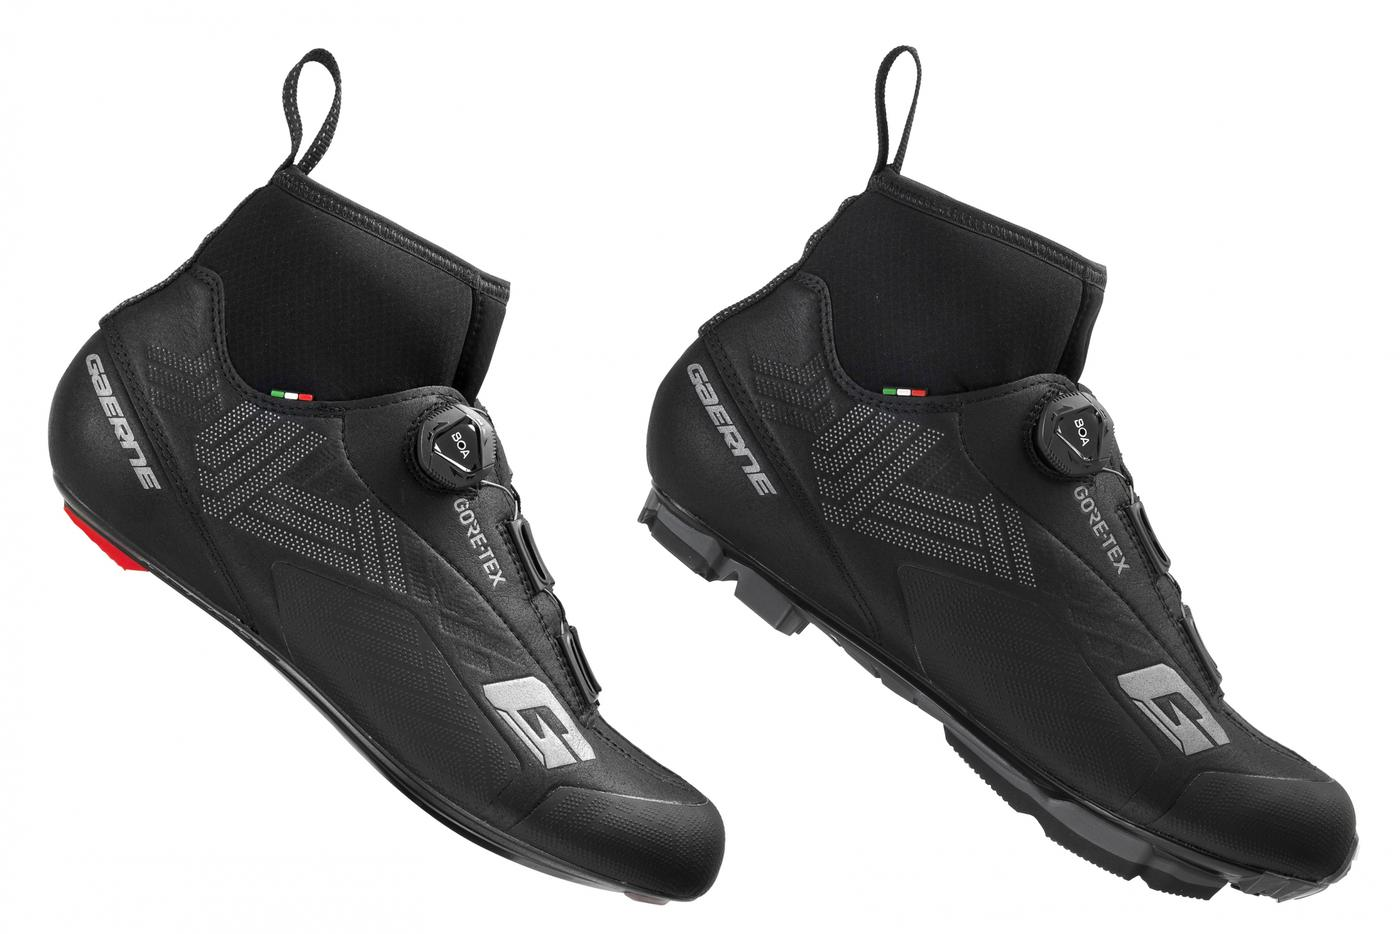 Gaerne Updates their Winter Road and Mountain Shoes